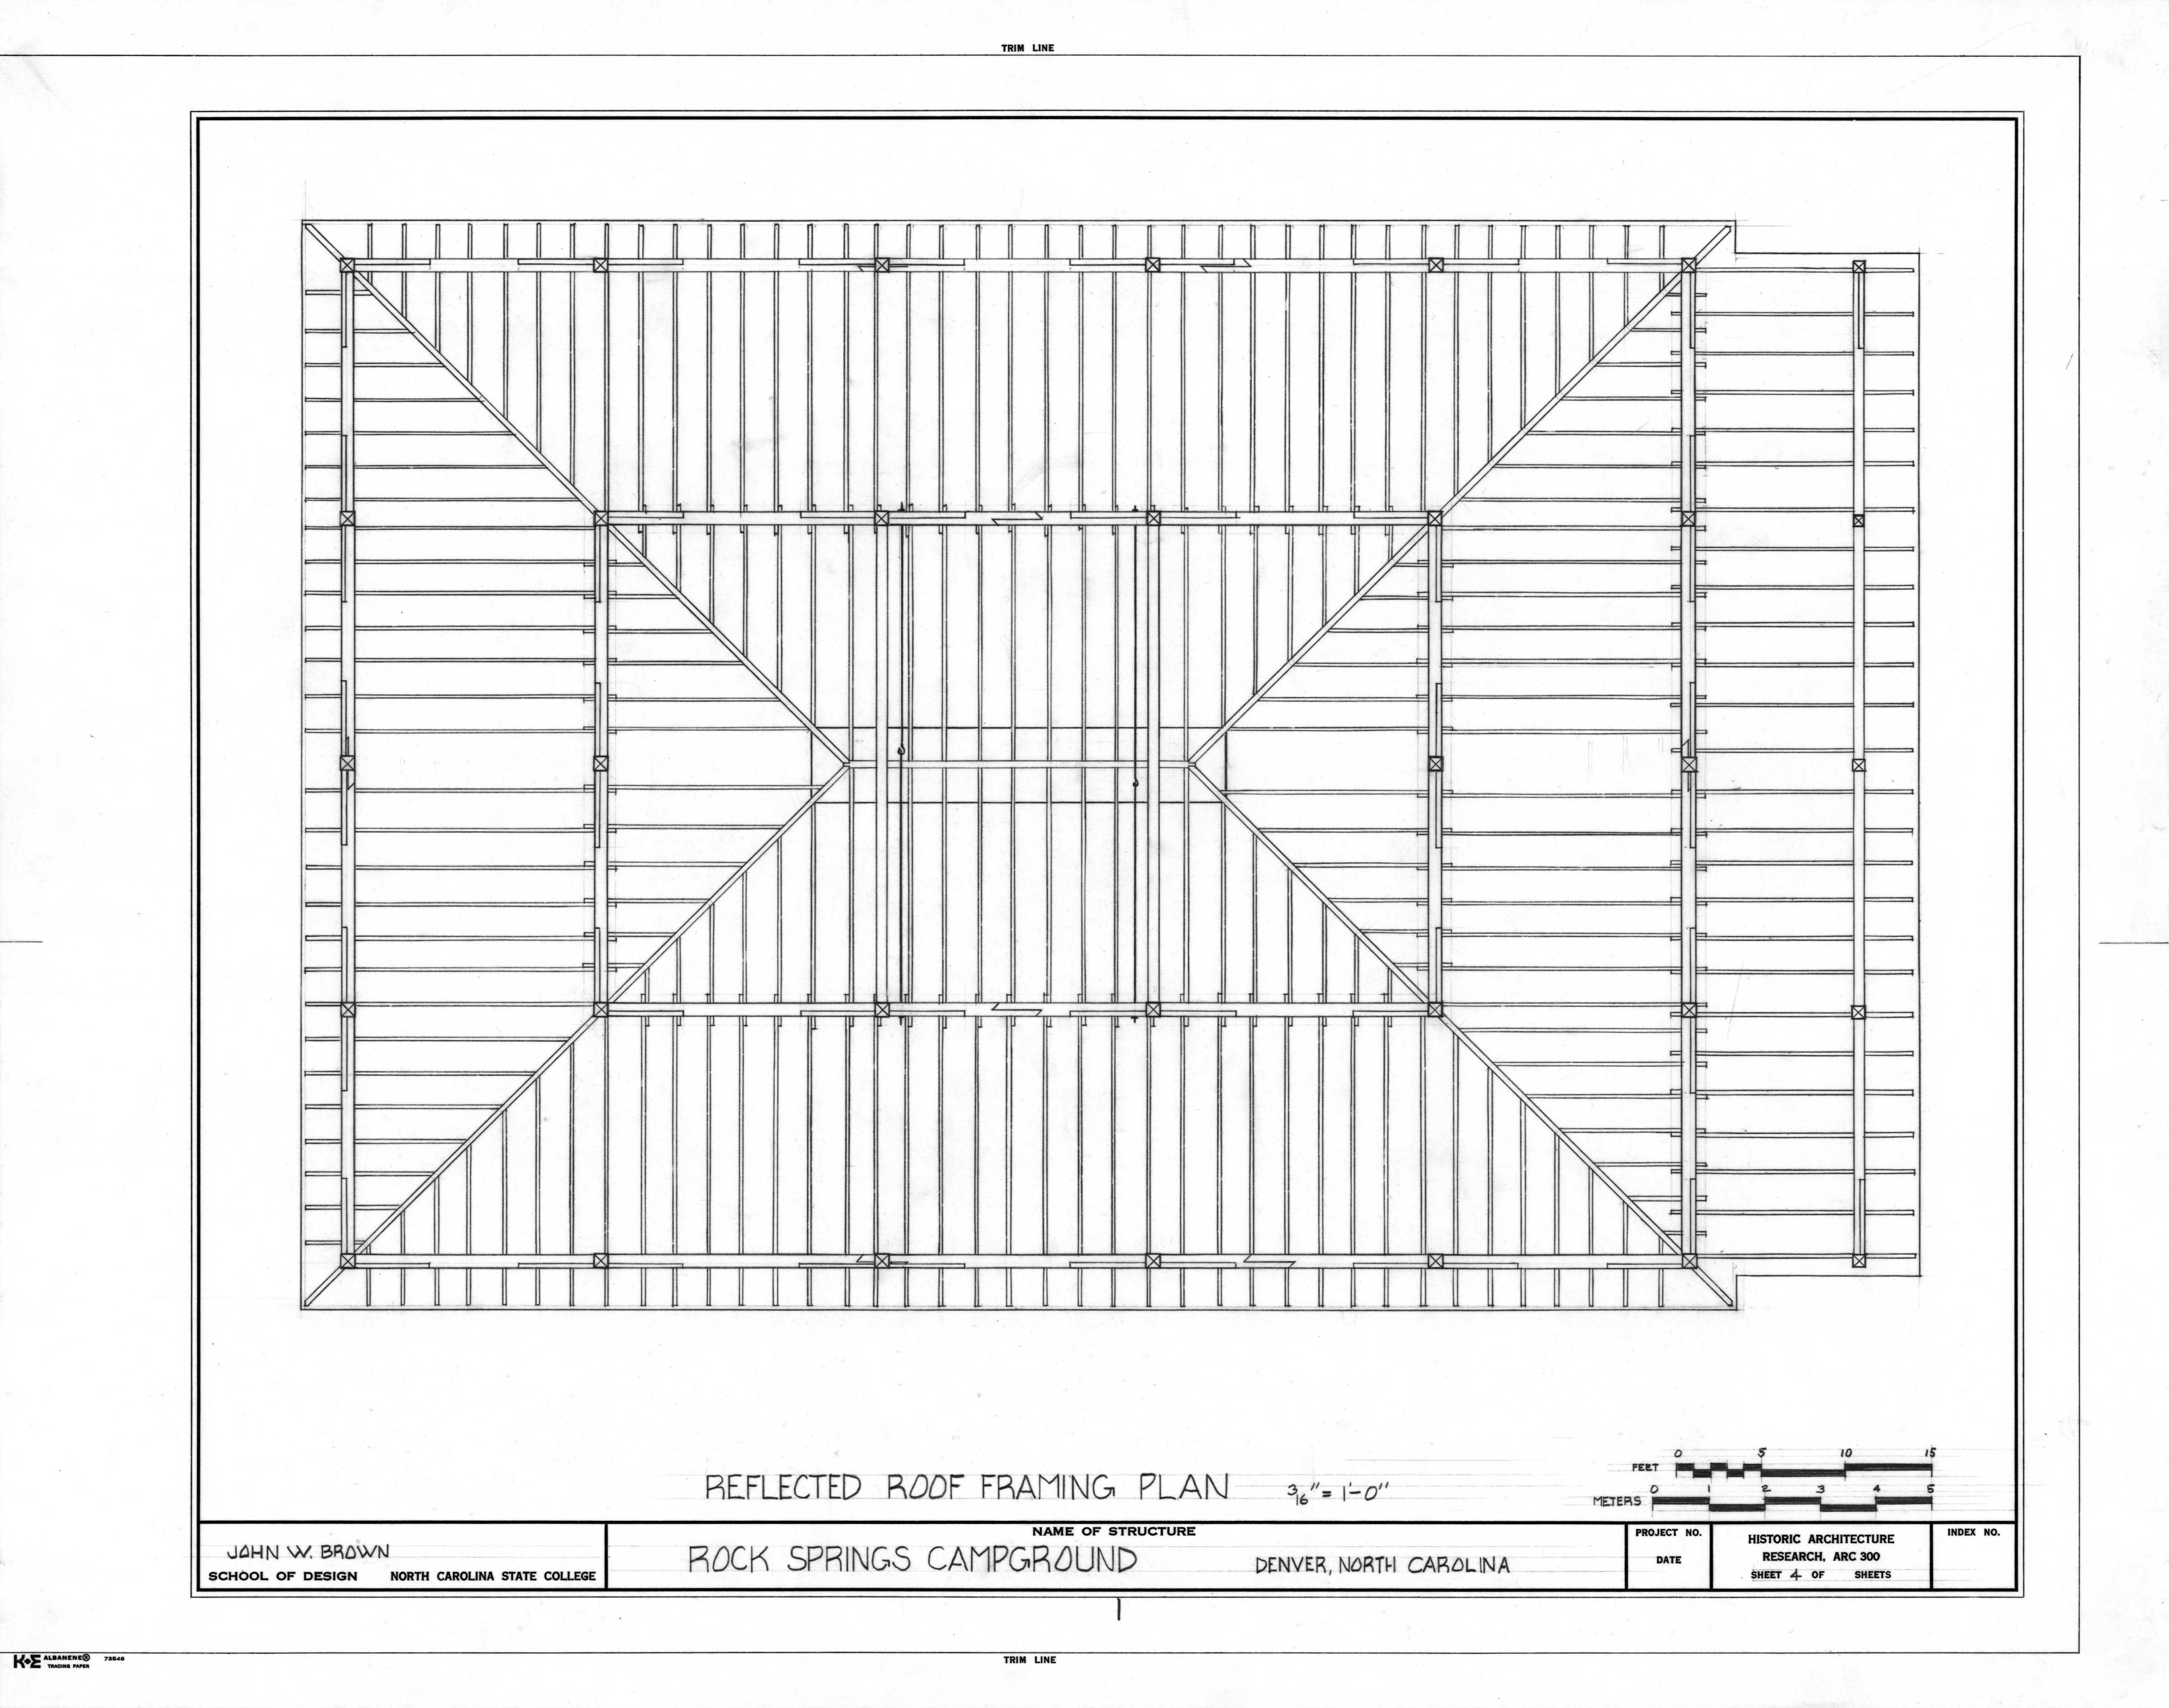 Roof plan drawing for Roof plan drawing